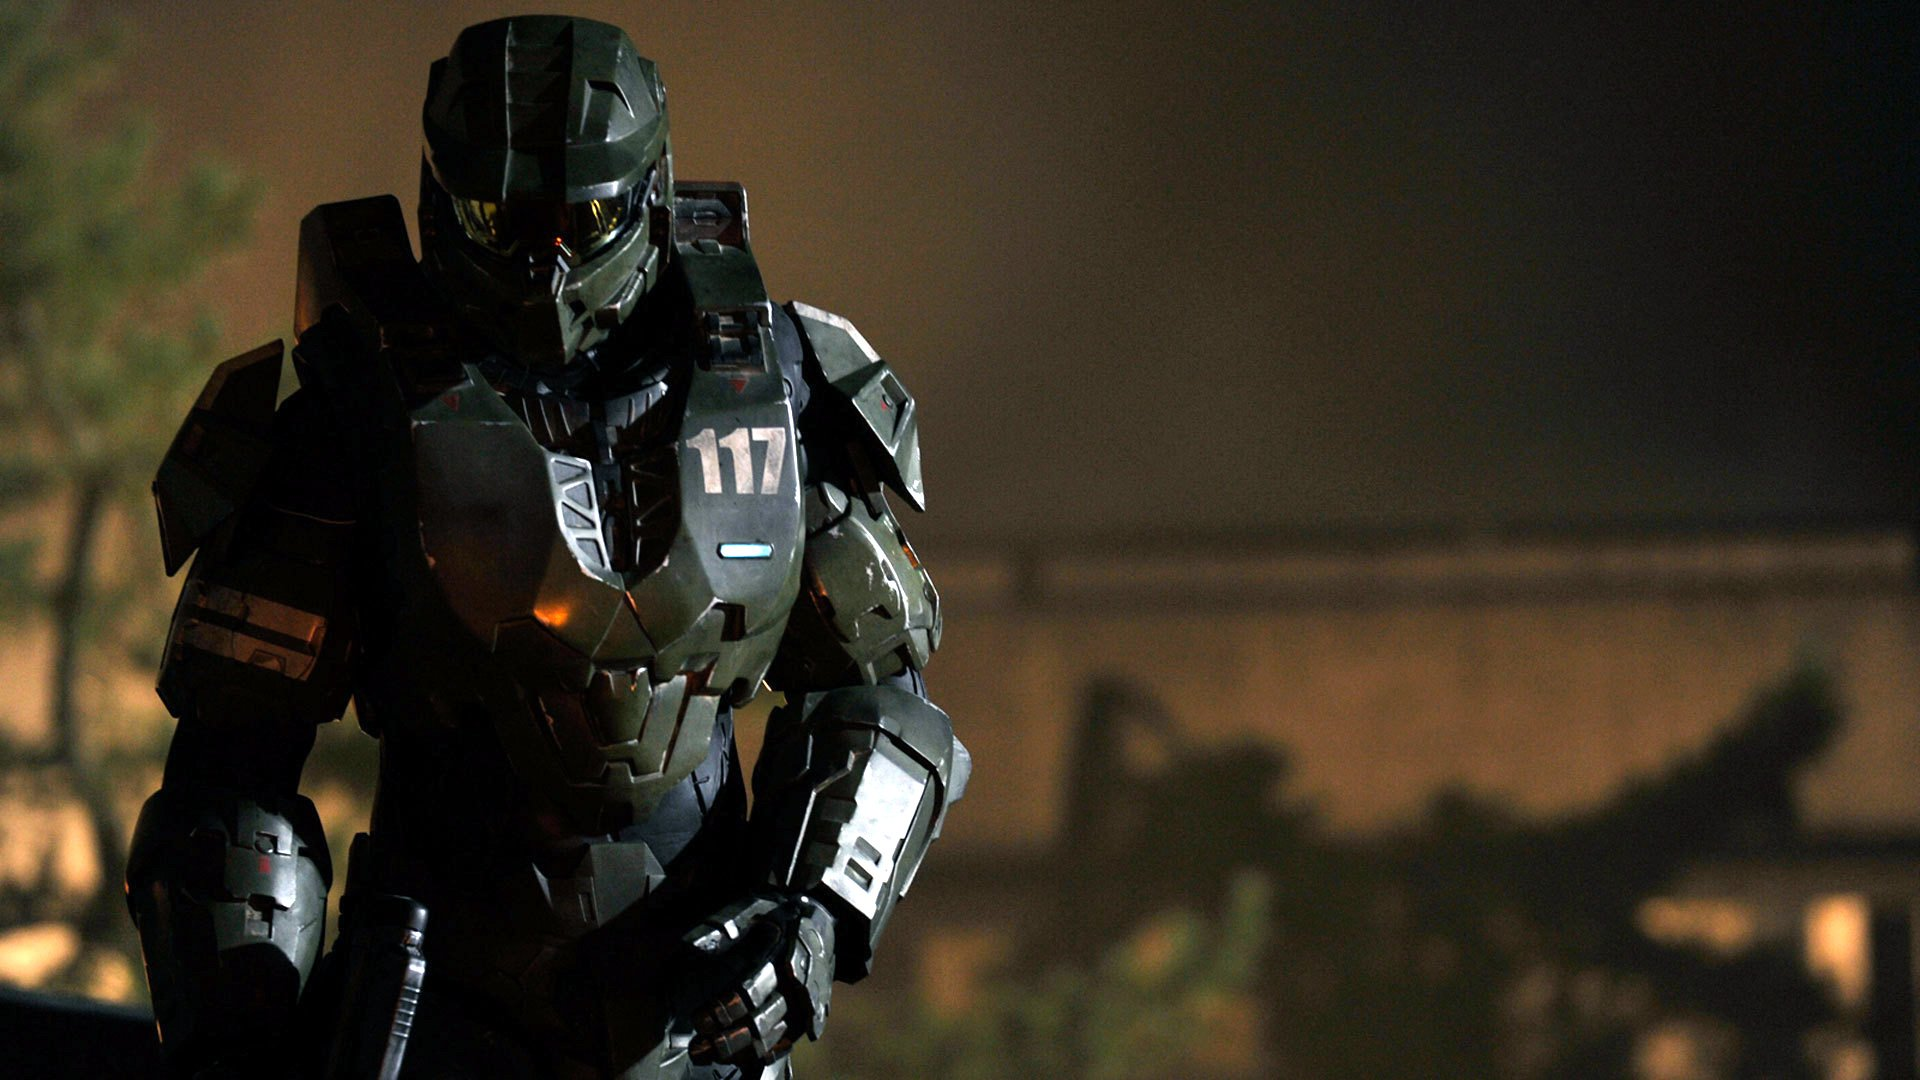 5 Halo 4 Forward Unto Dawn Hd Wallpapers Background Images